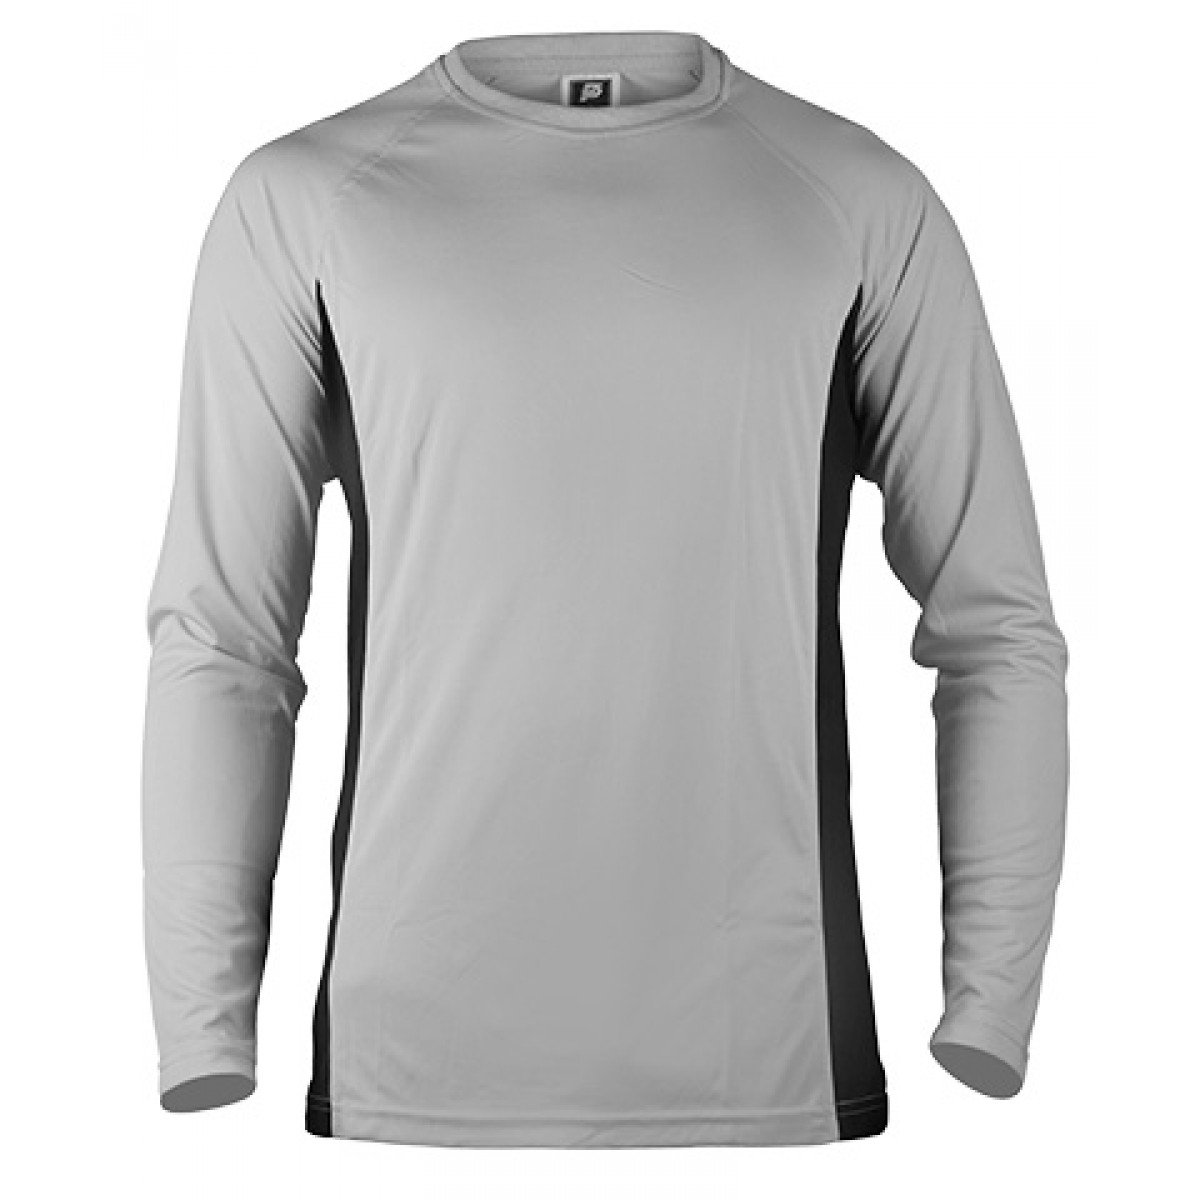 Long Sleeves Performance With Side Insert-Gray/Black-YM